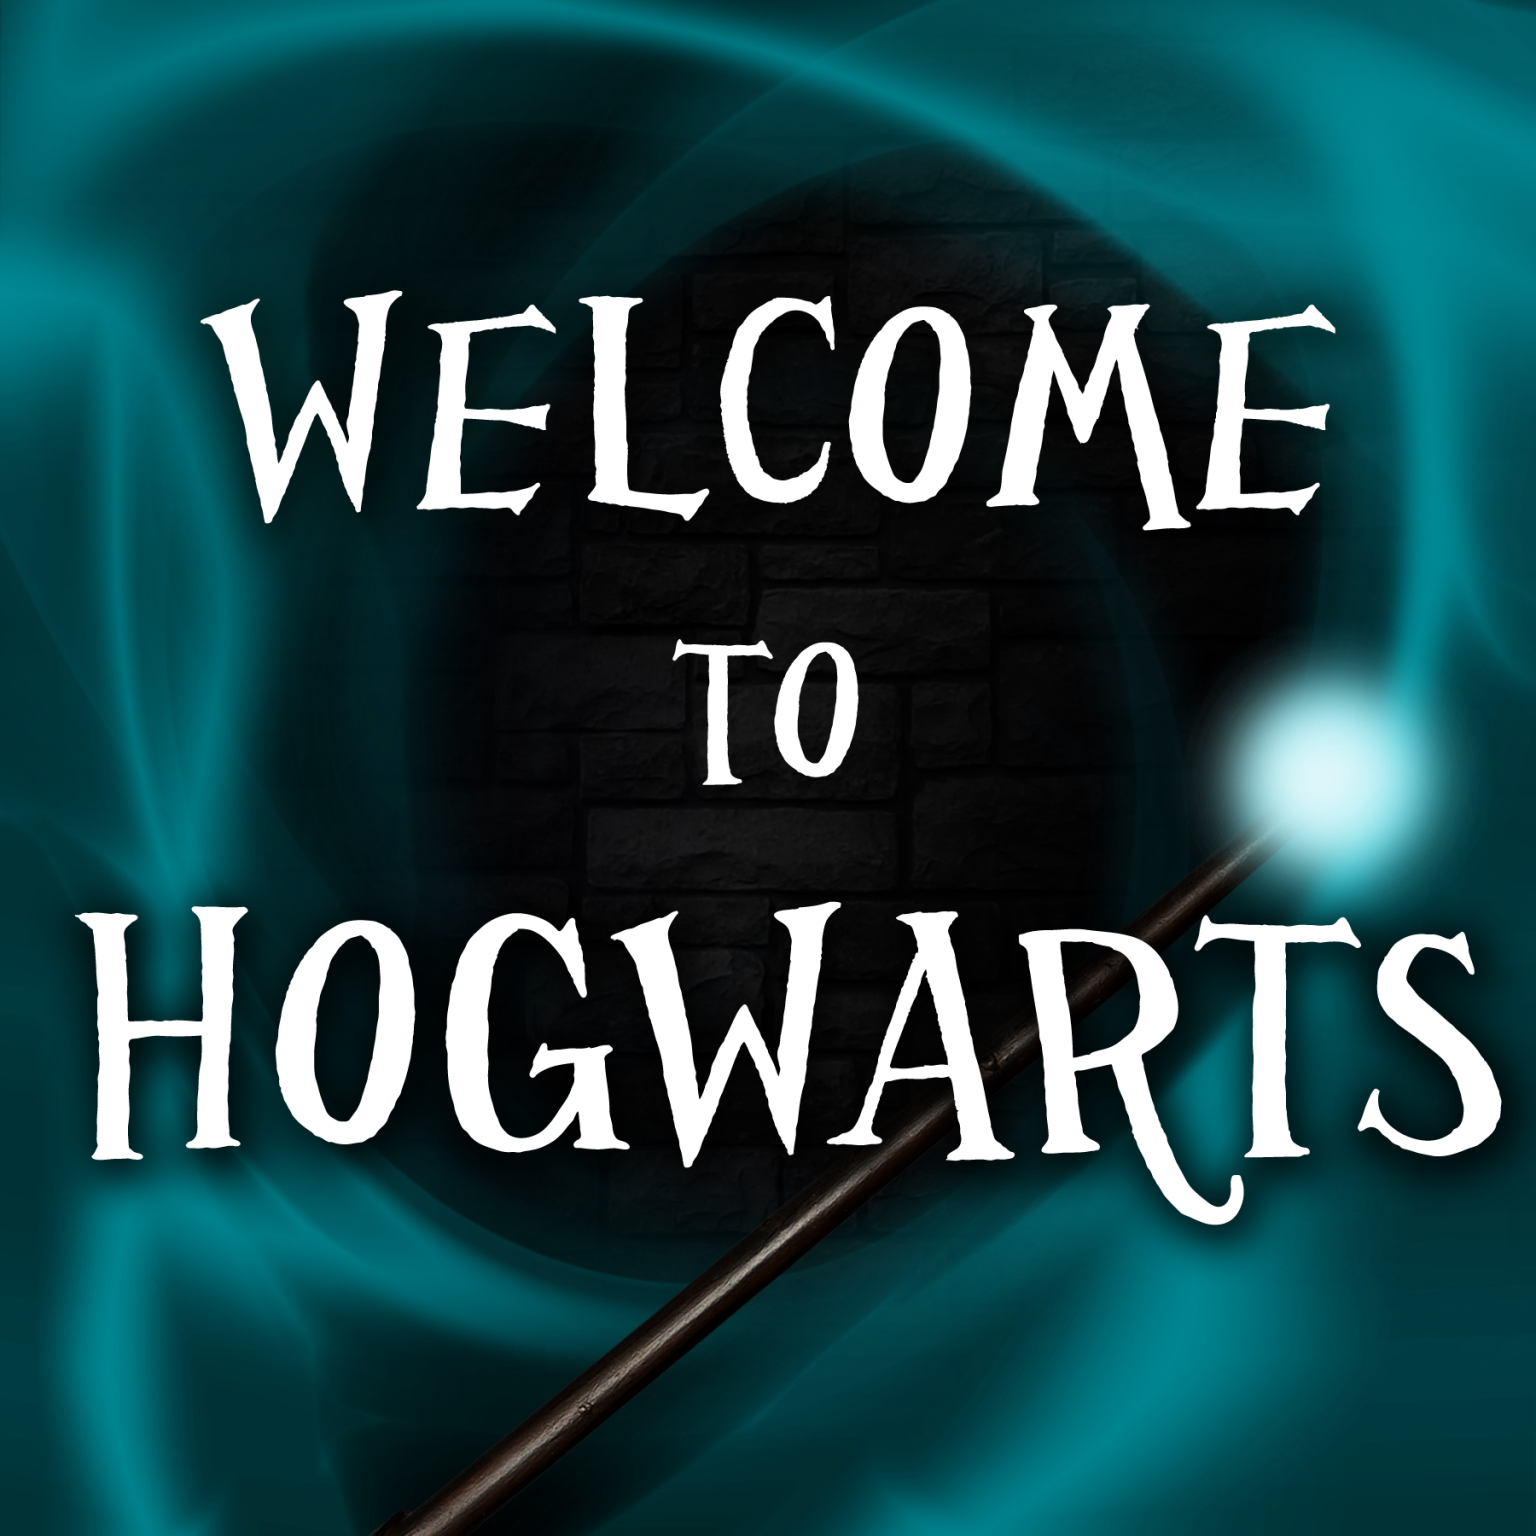 welcome-to-hogwarts2